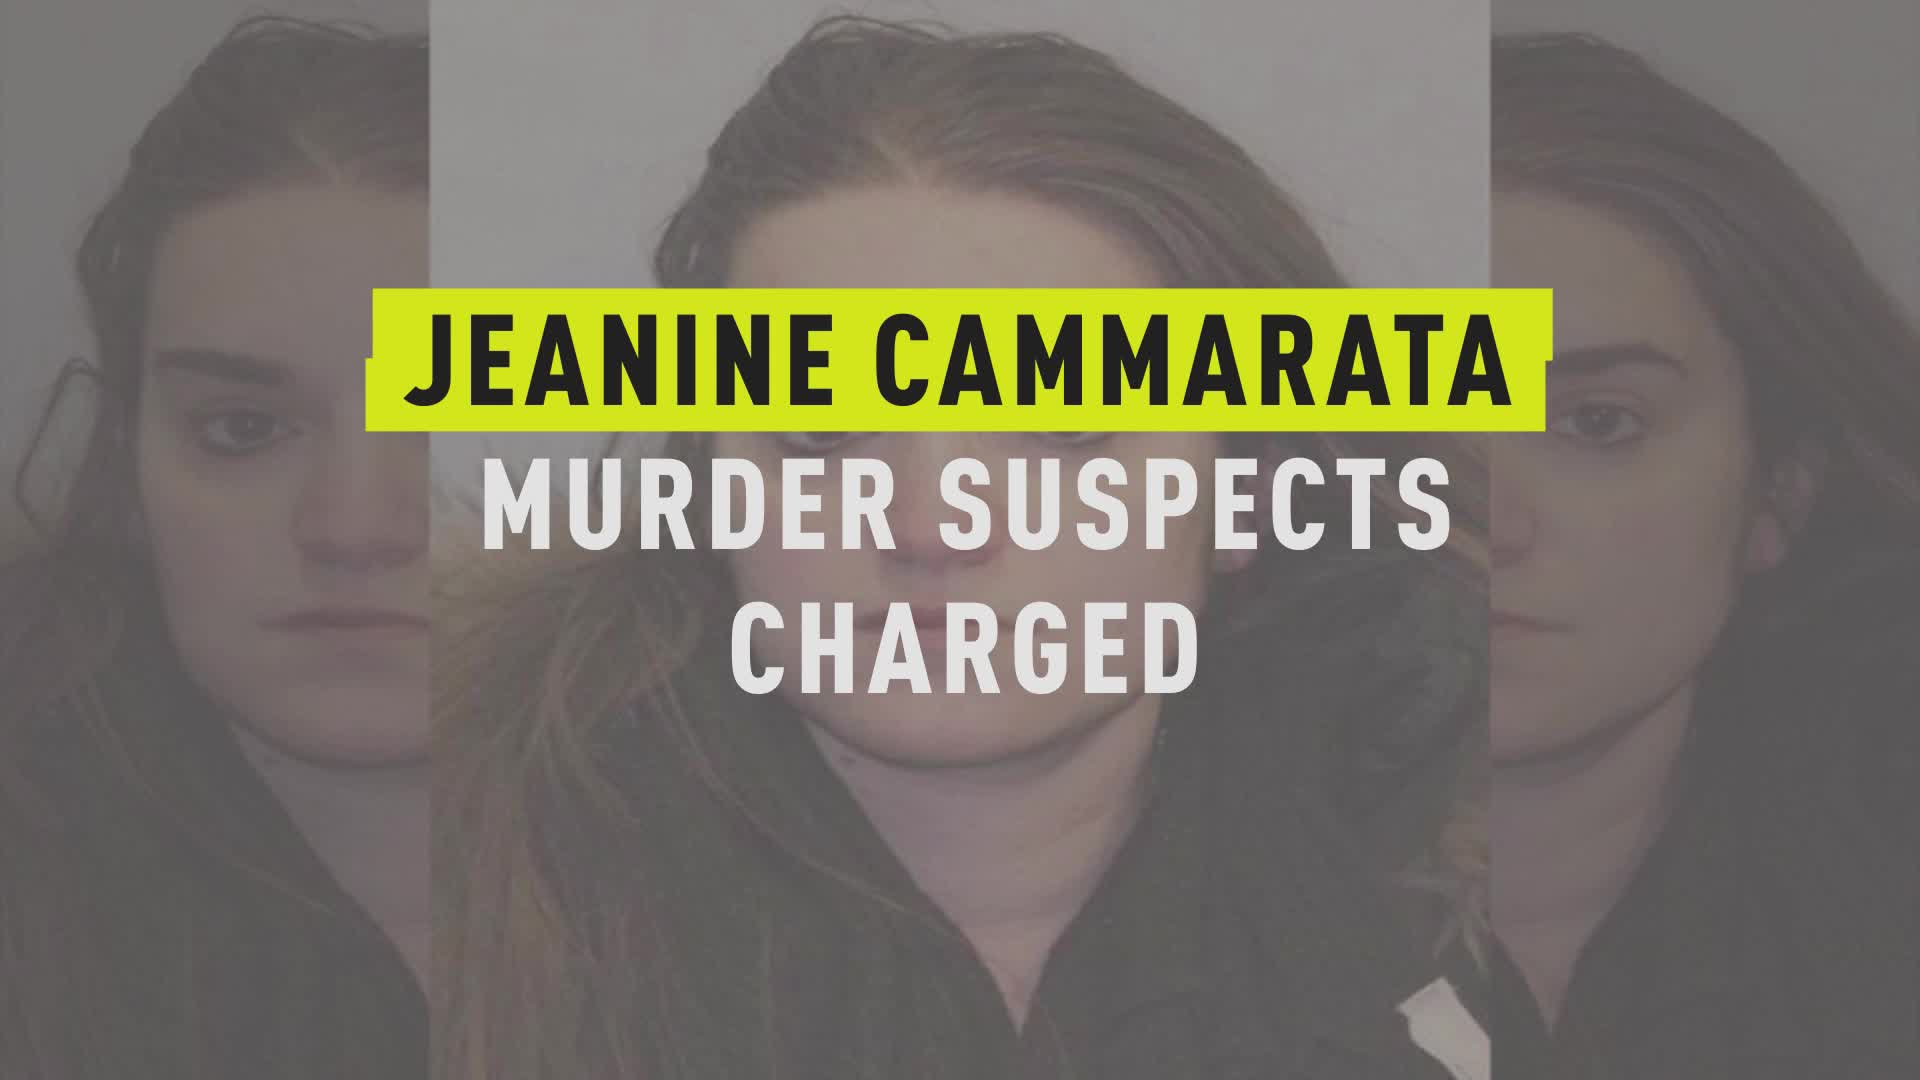 Jeanine Cammarata Murder Suspects Charged